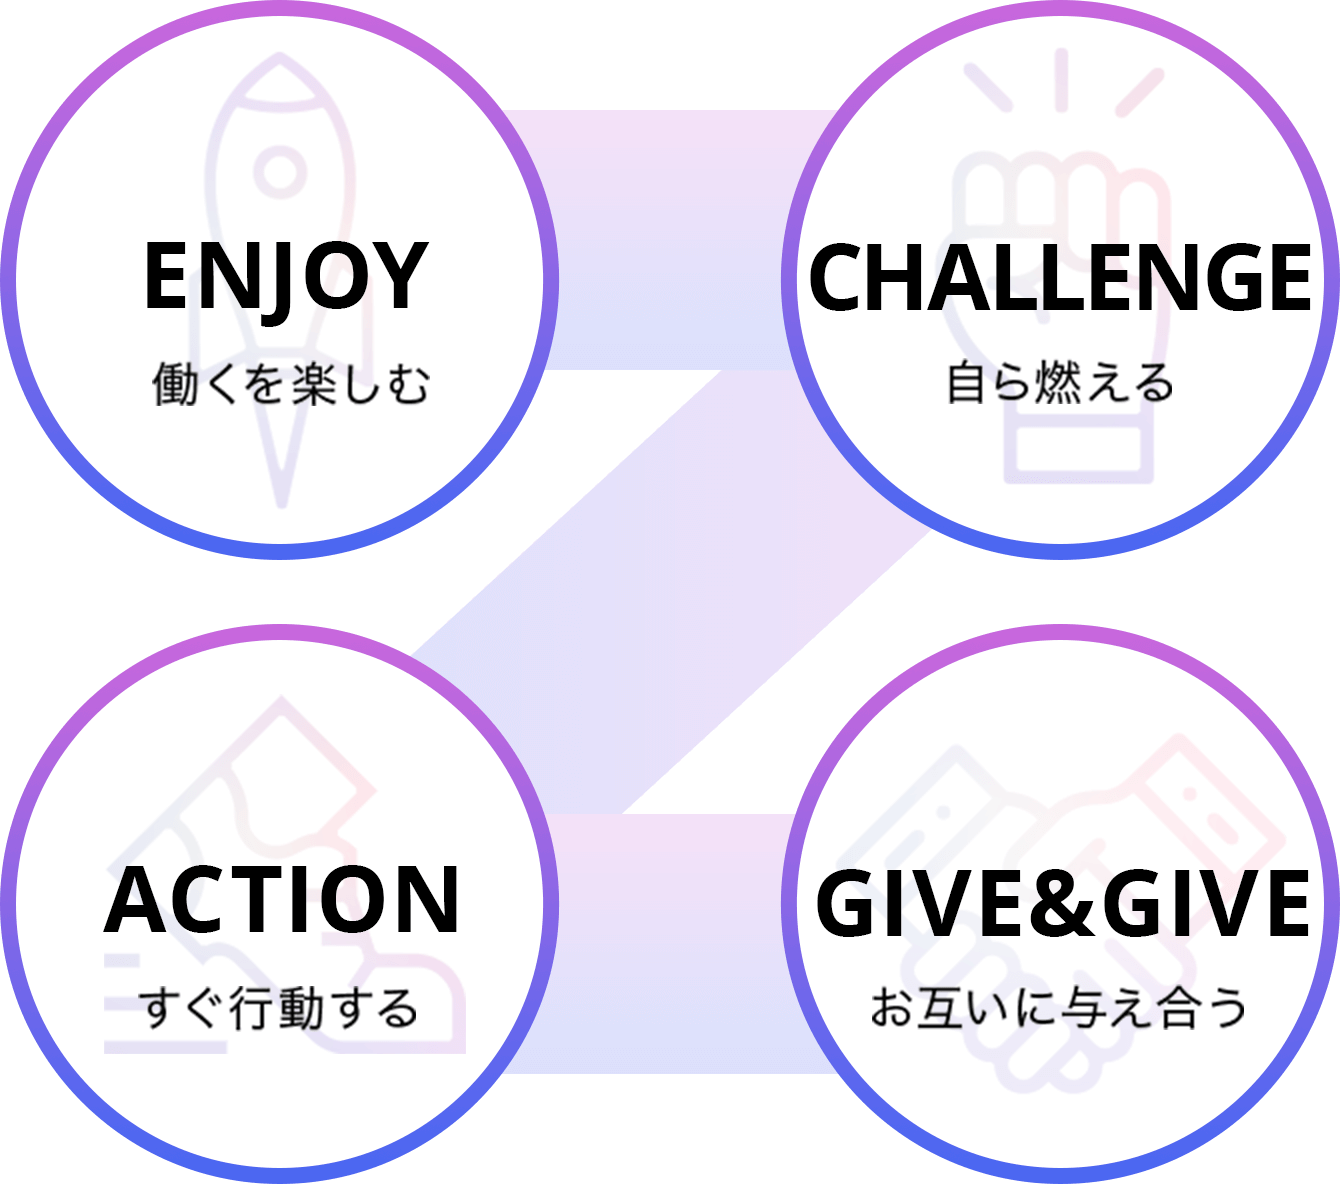 ENJOY CHALLENGE ACTION GIVE&GIVE